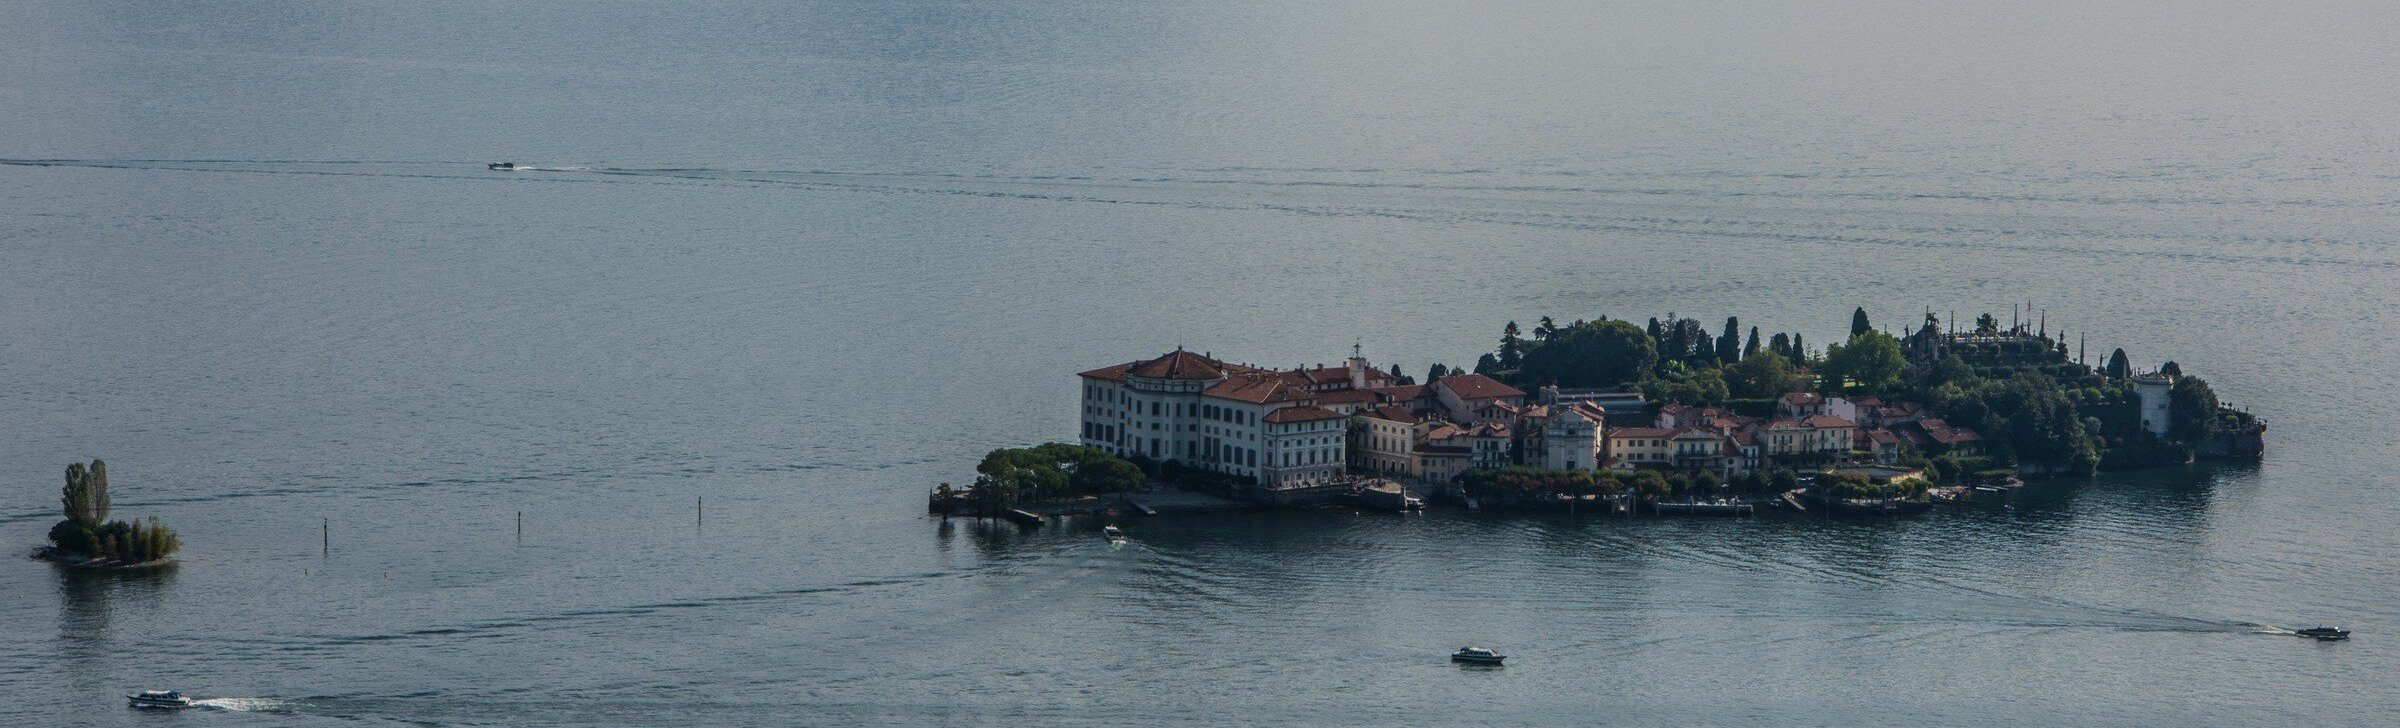 ISOLA BELLA, VIEW FROM CABLE CAR, STRESA (PROVINCE OF VERBANO CUSIO OSSOLA)